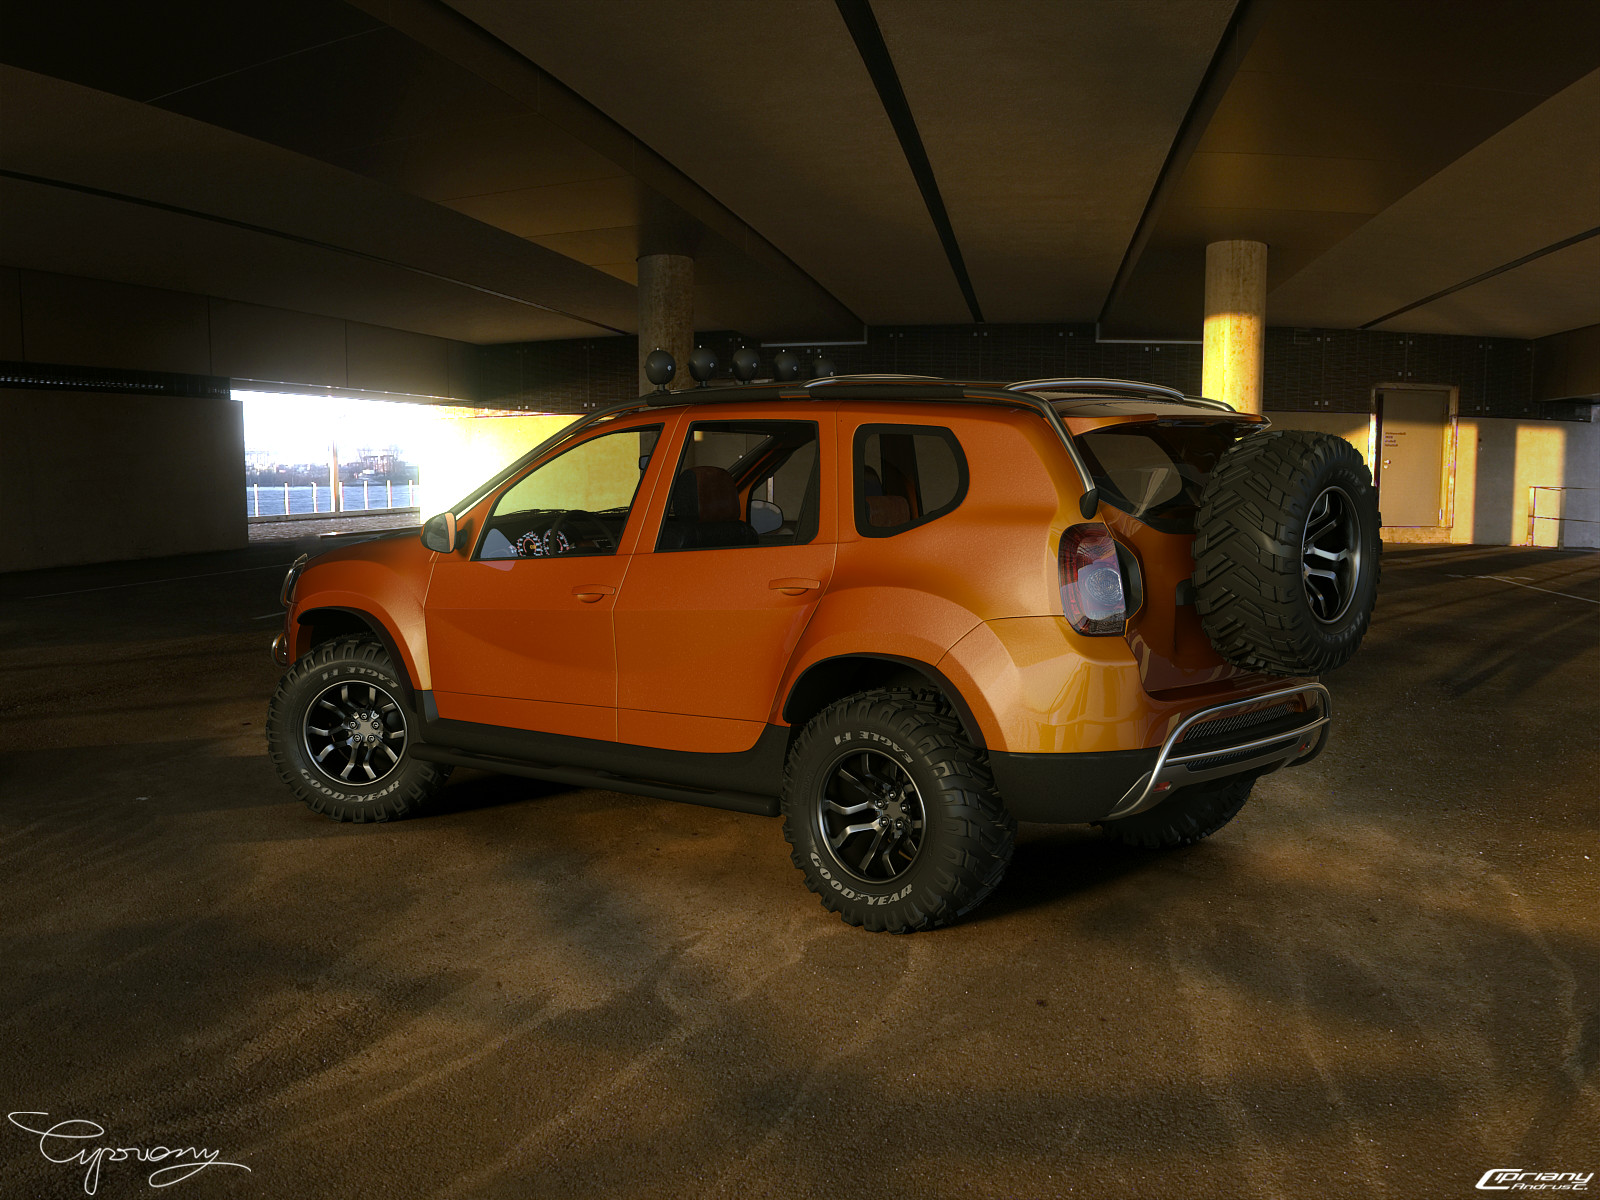 dacia duster tuning 14 by cipriany on deviantart. Black Bedroom Furniture Sets. Home Design Ideas